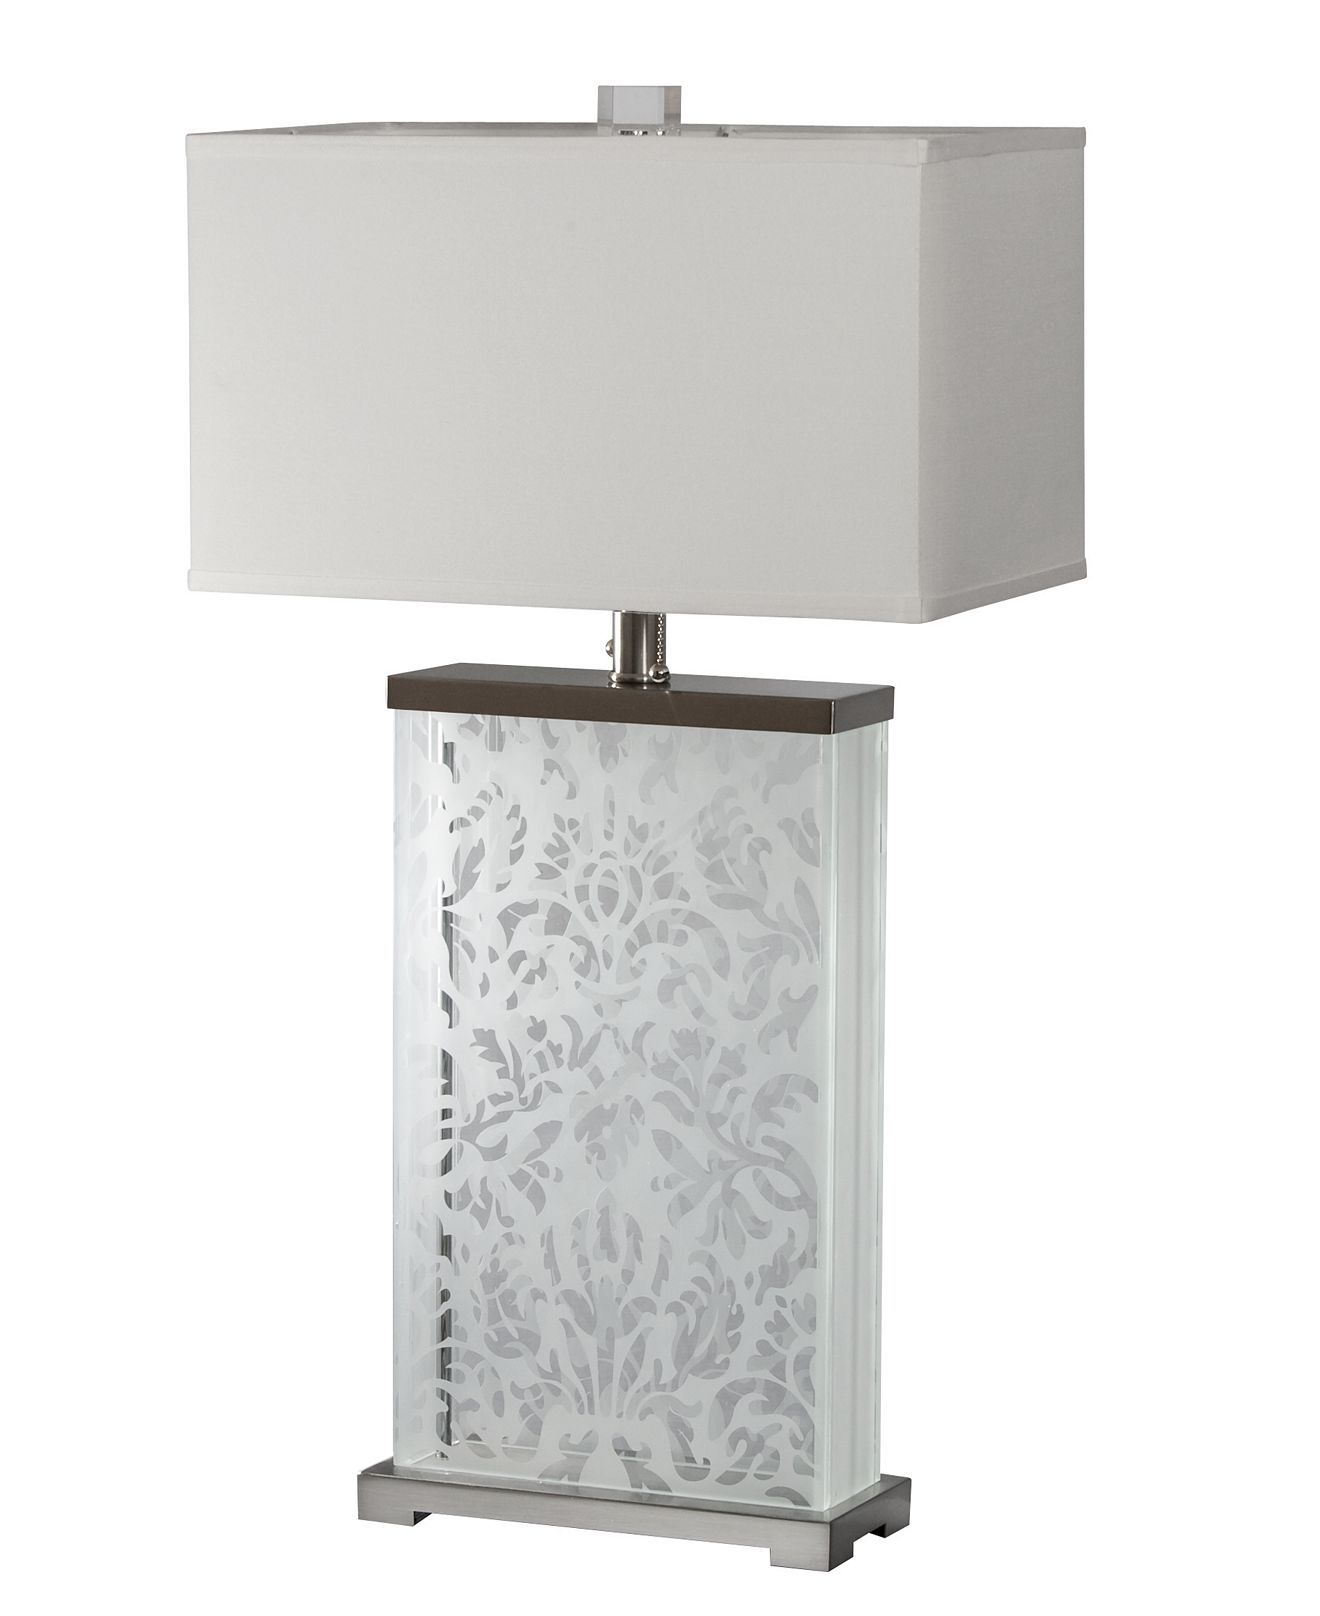 Candice olson damask lamp ohhh this is gorgeous but at 900 candice olson damask lamp ohhh this is gorgeous but at 900 its geotapseo Image collections